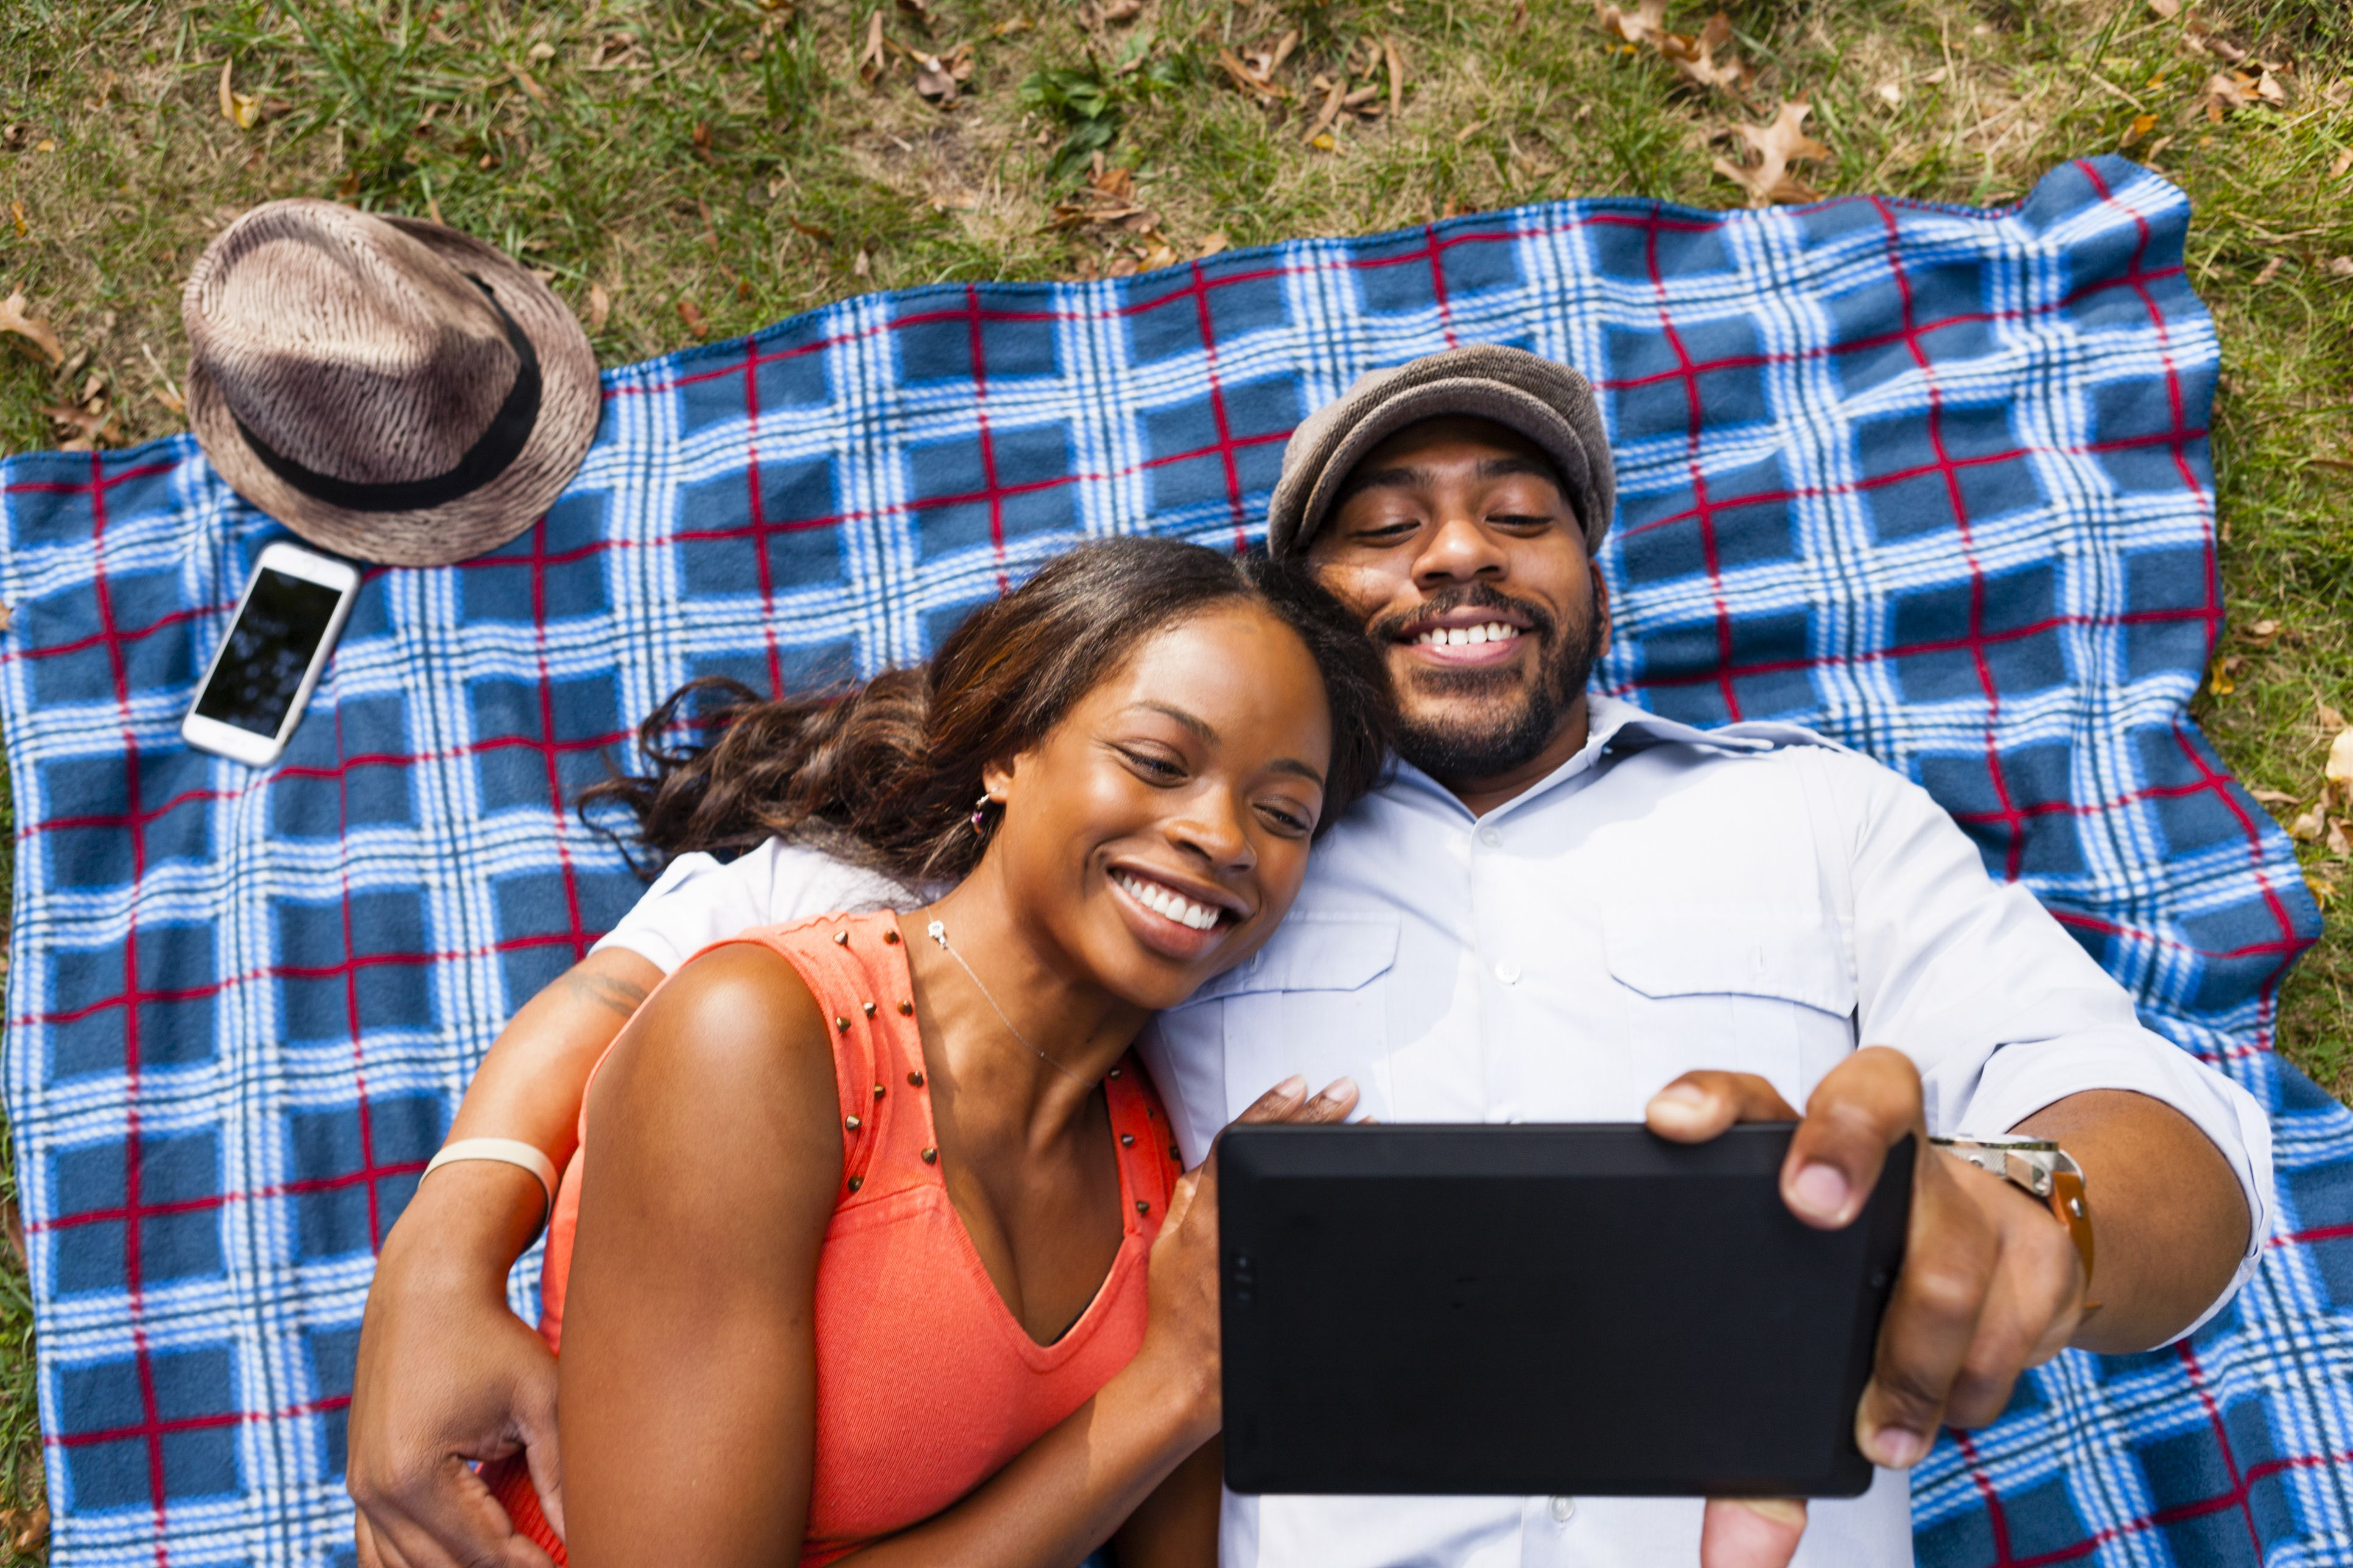 Couple taking time to have fun